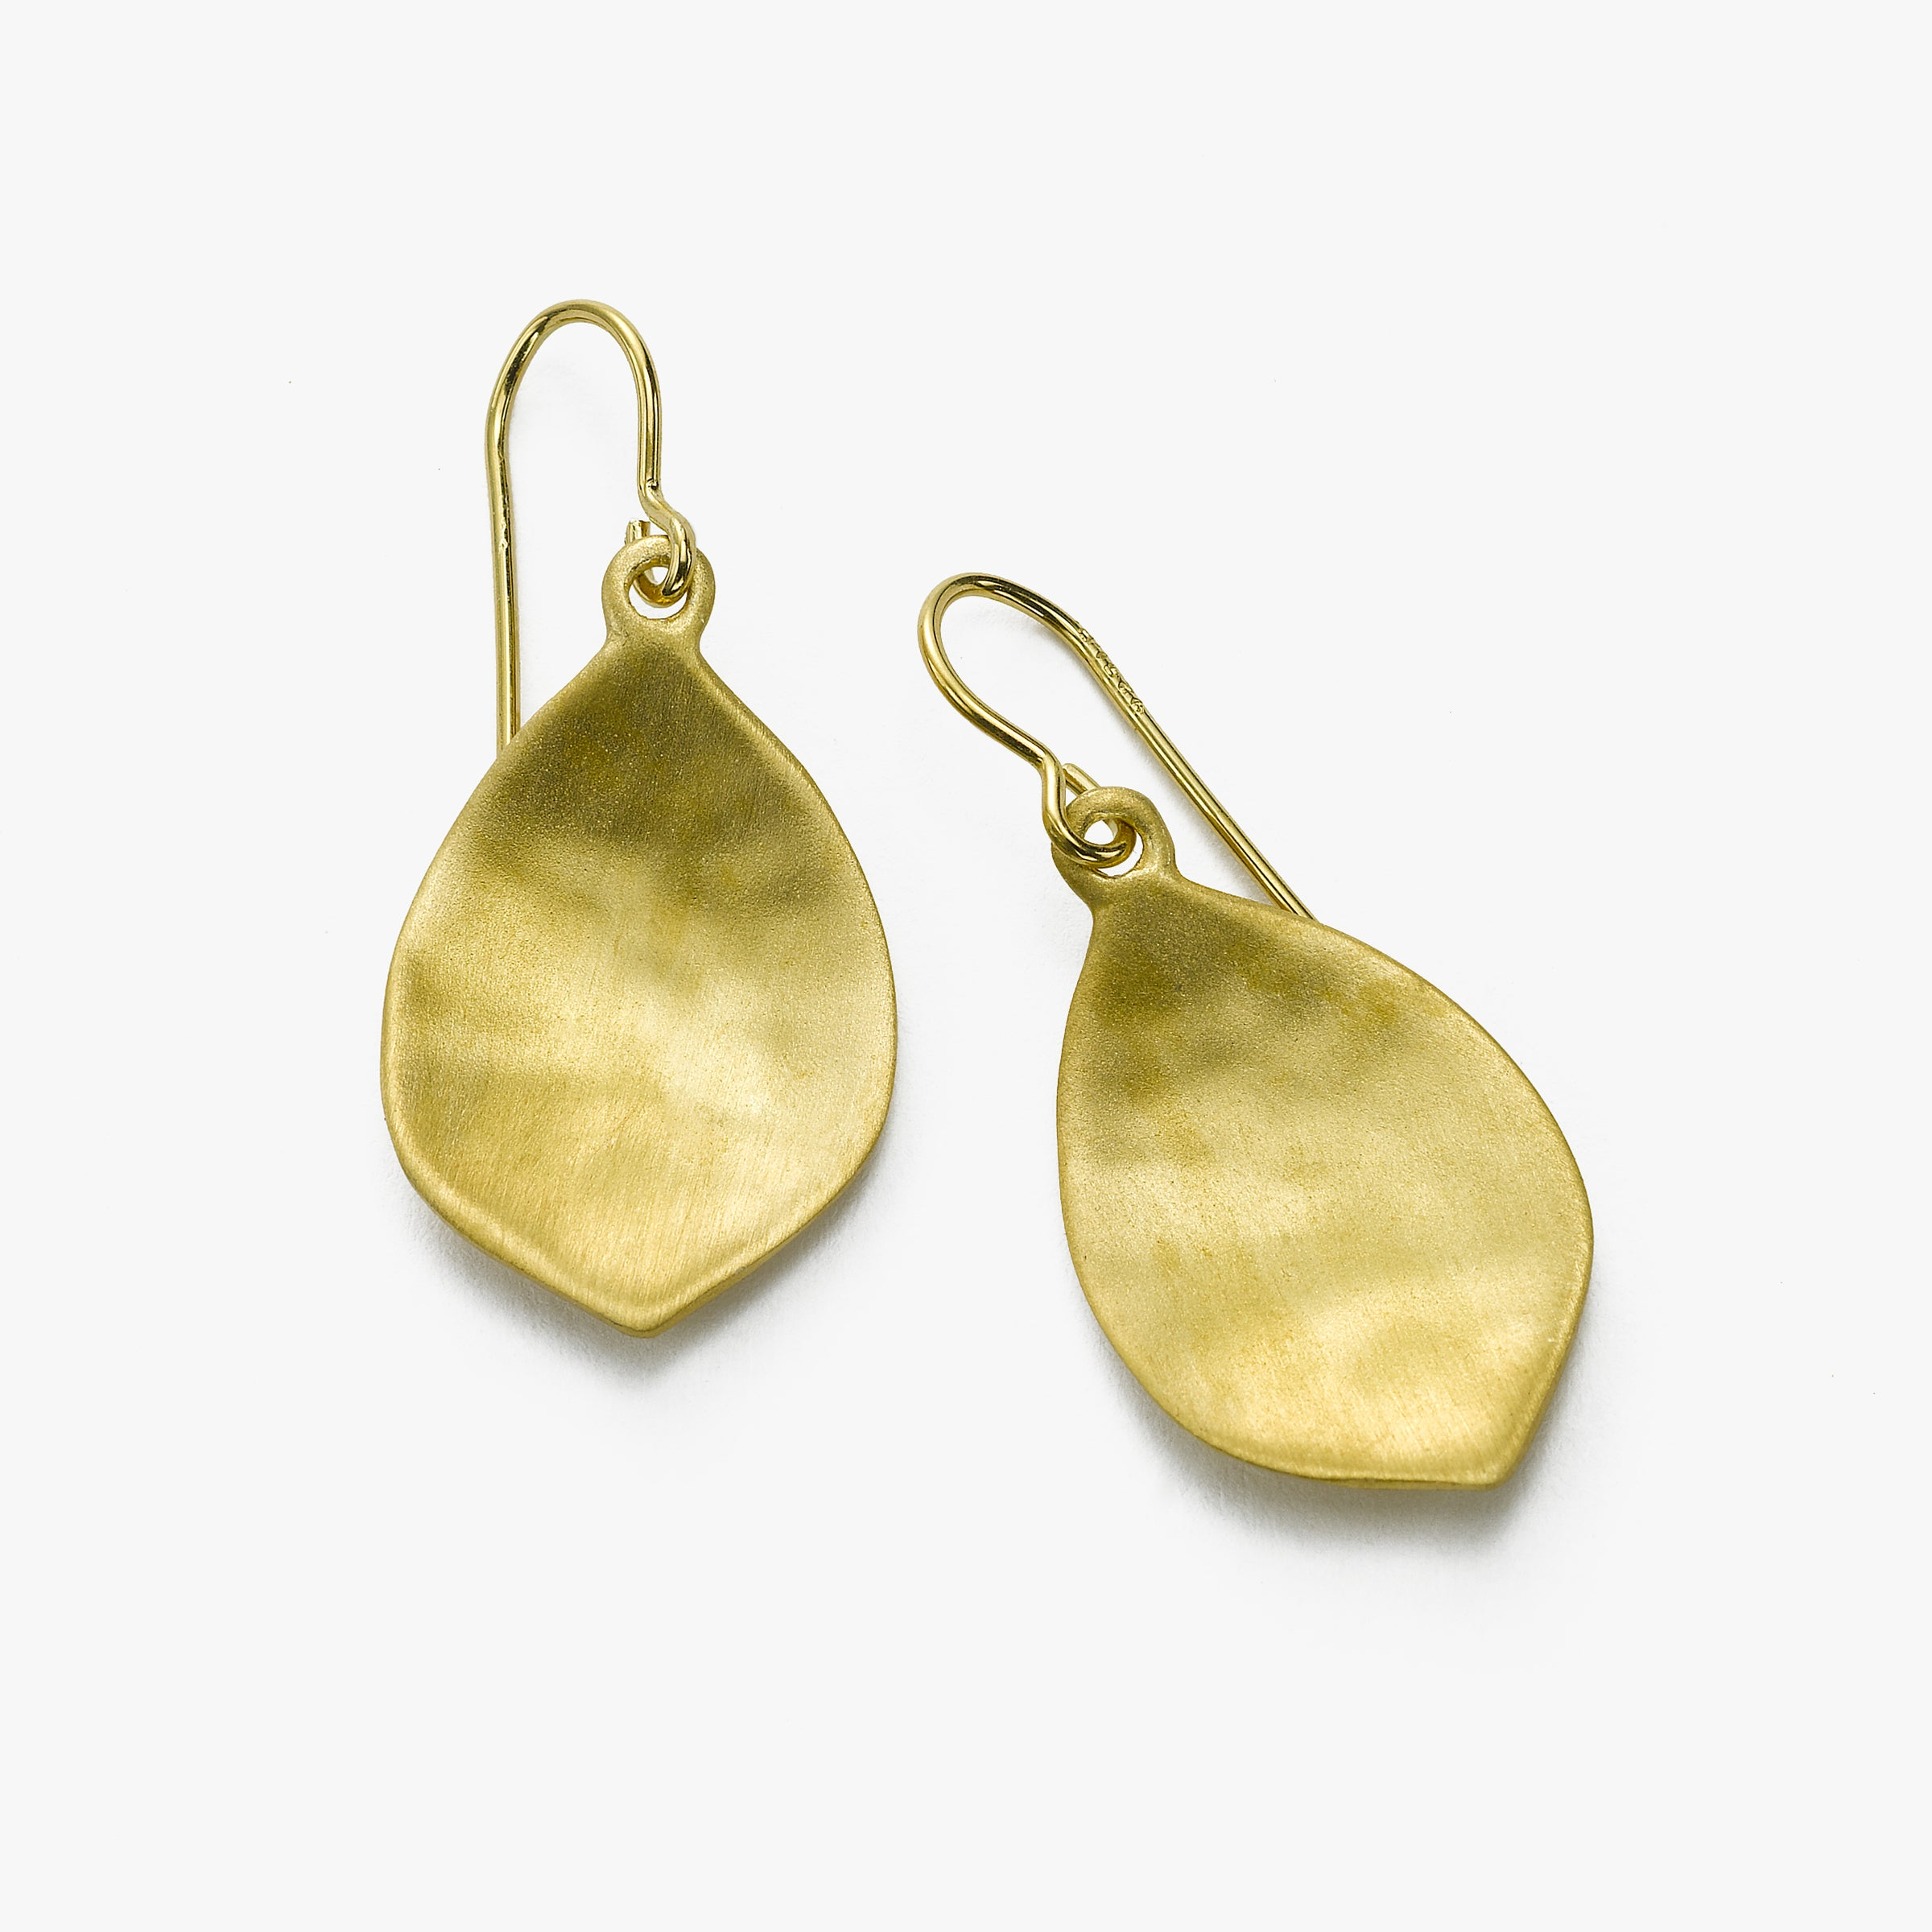 Vermeil Earring with Textured Matte Pear Drop, by Sharelli